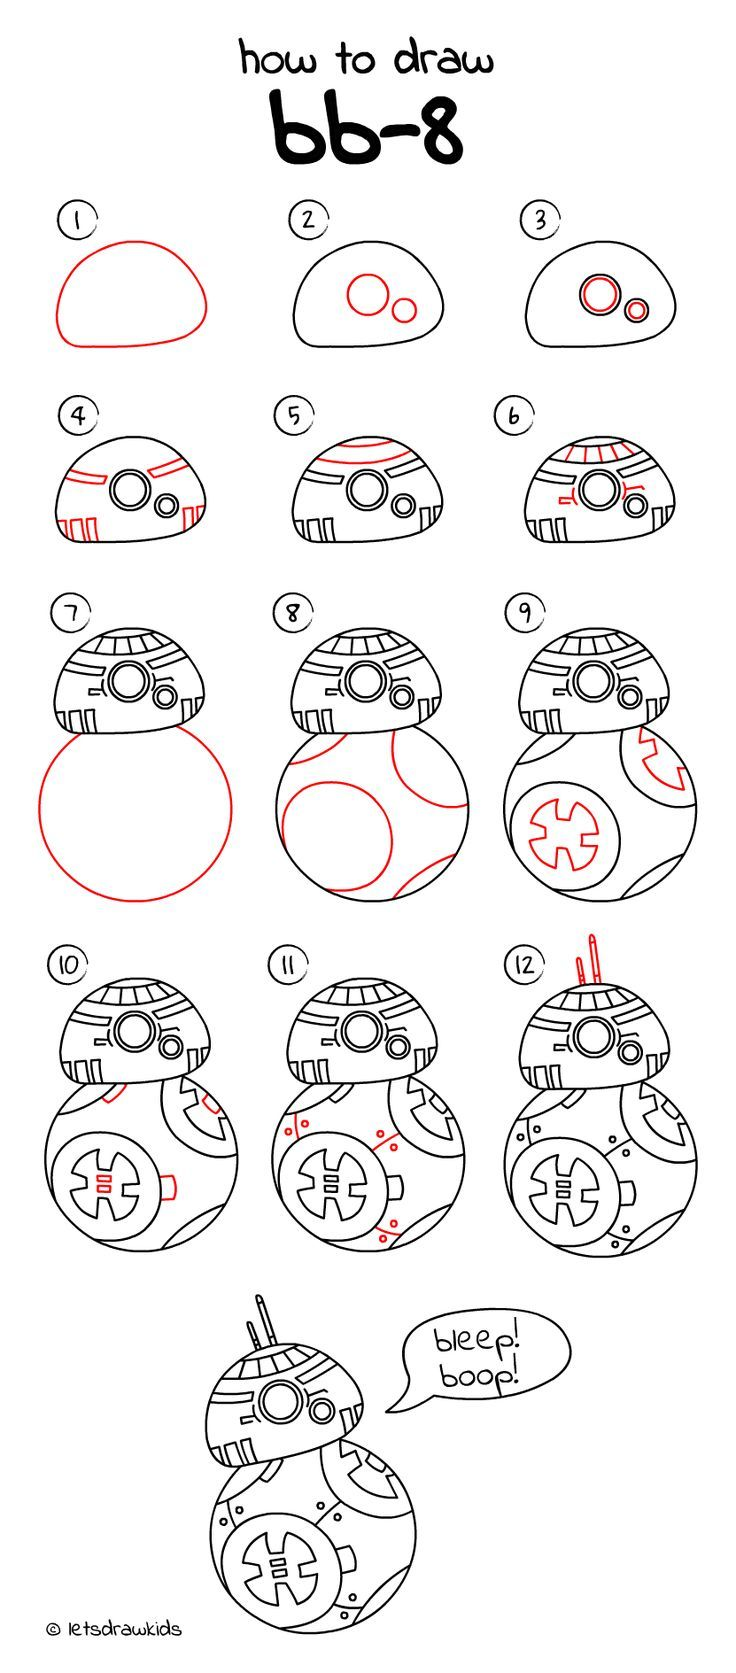 Uncategorized Simple Drawing For Kids Step By Step how to draw bb 8 from star wars easy drawing step by step